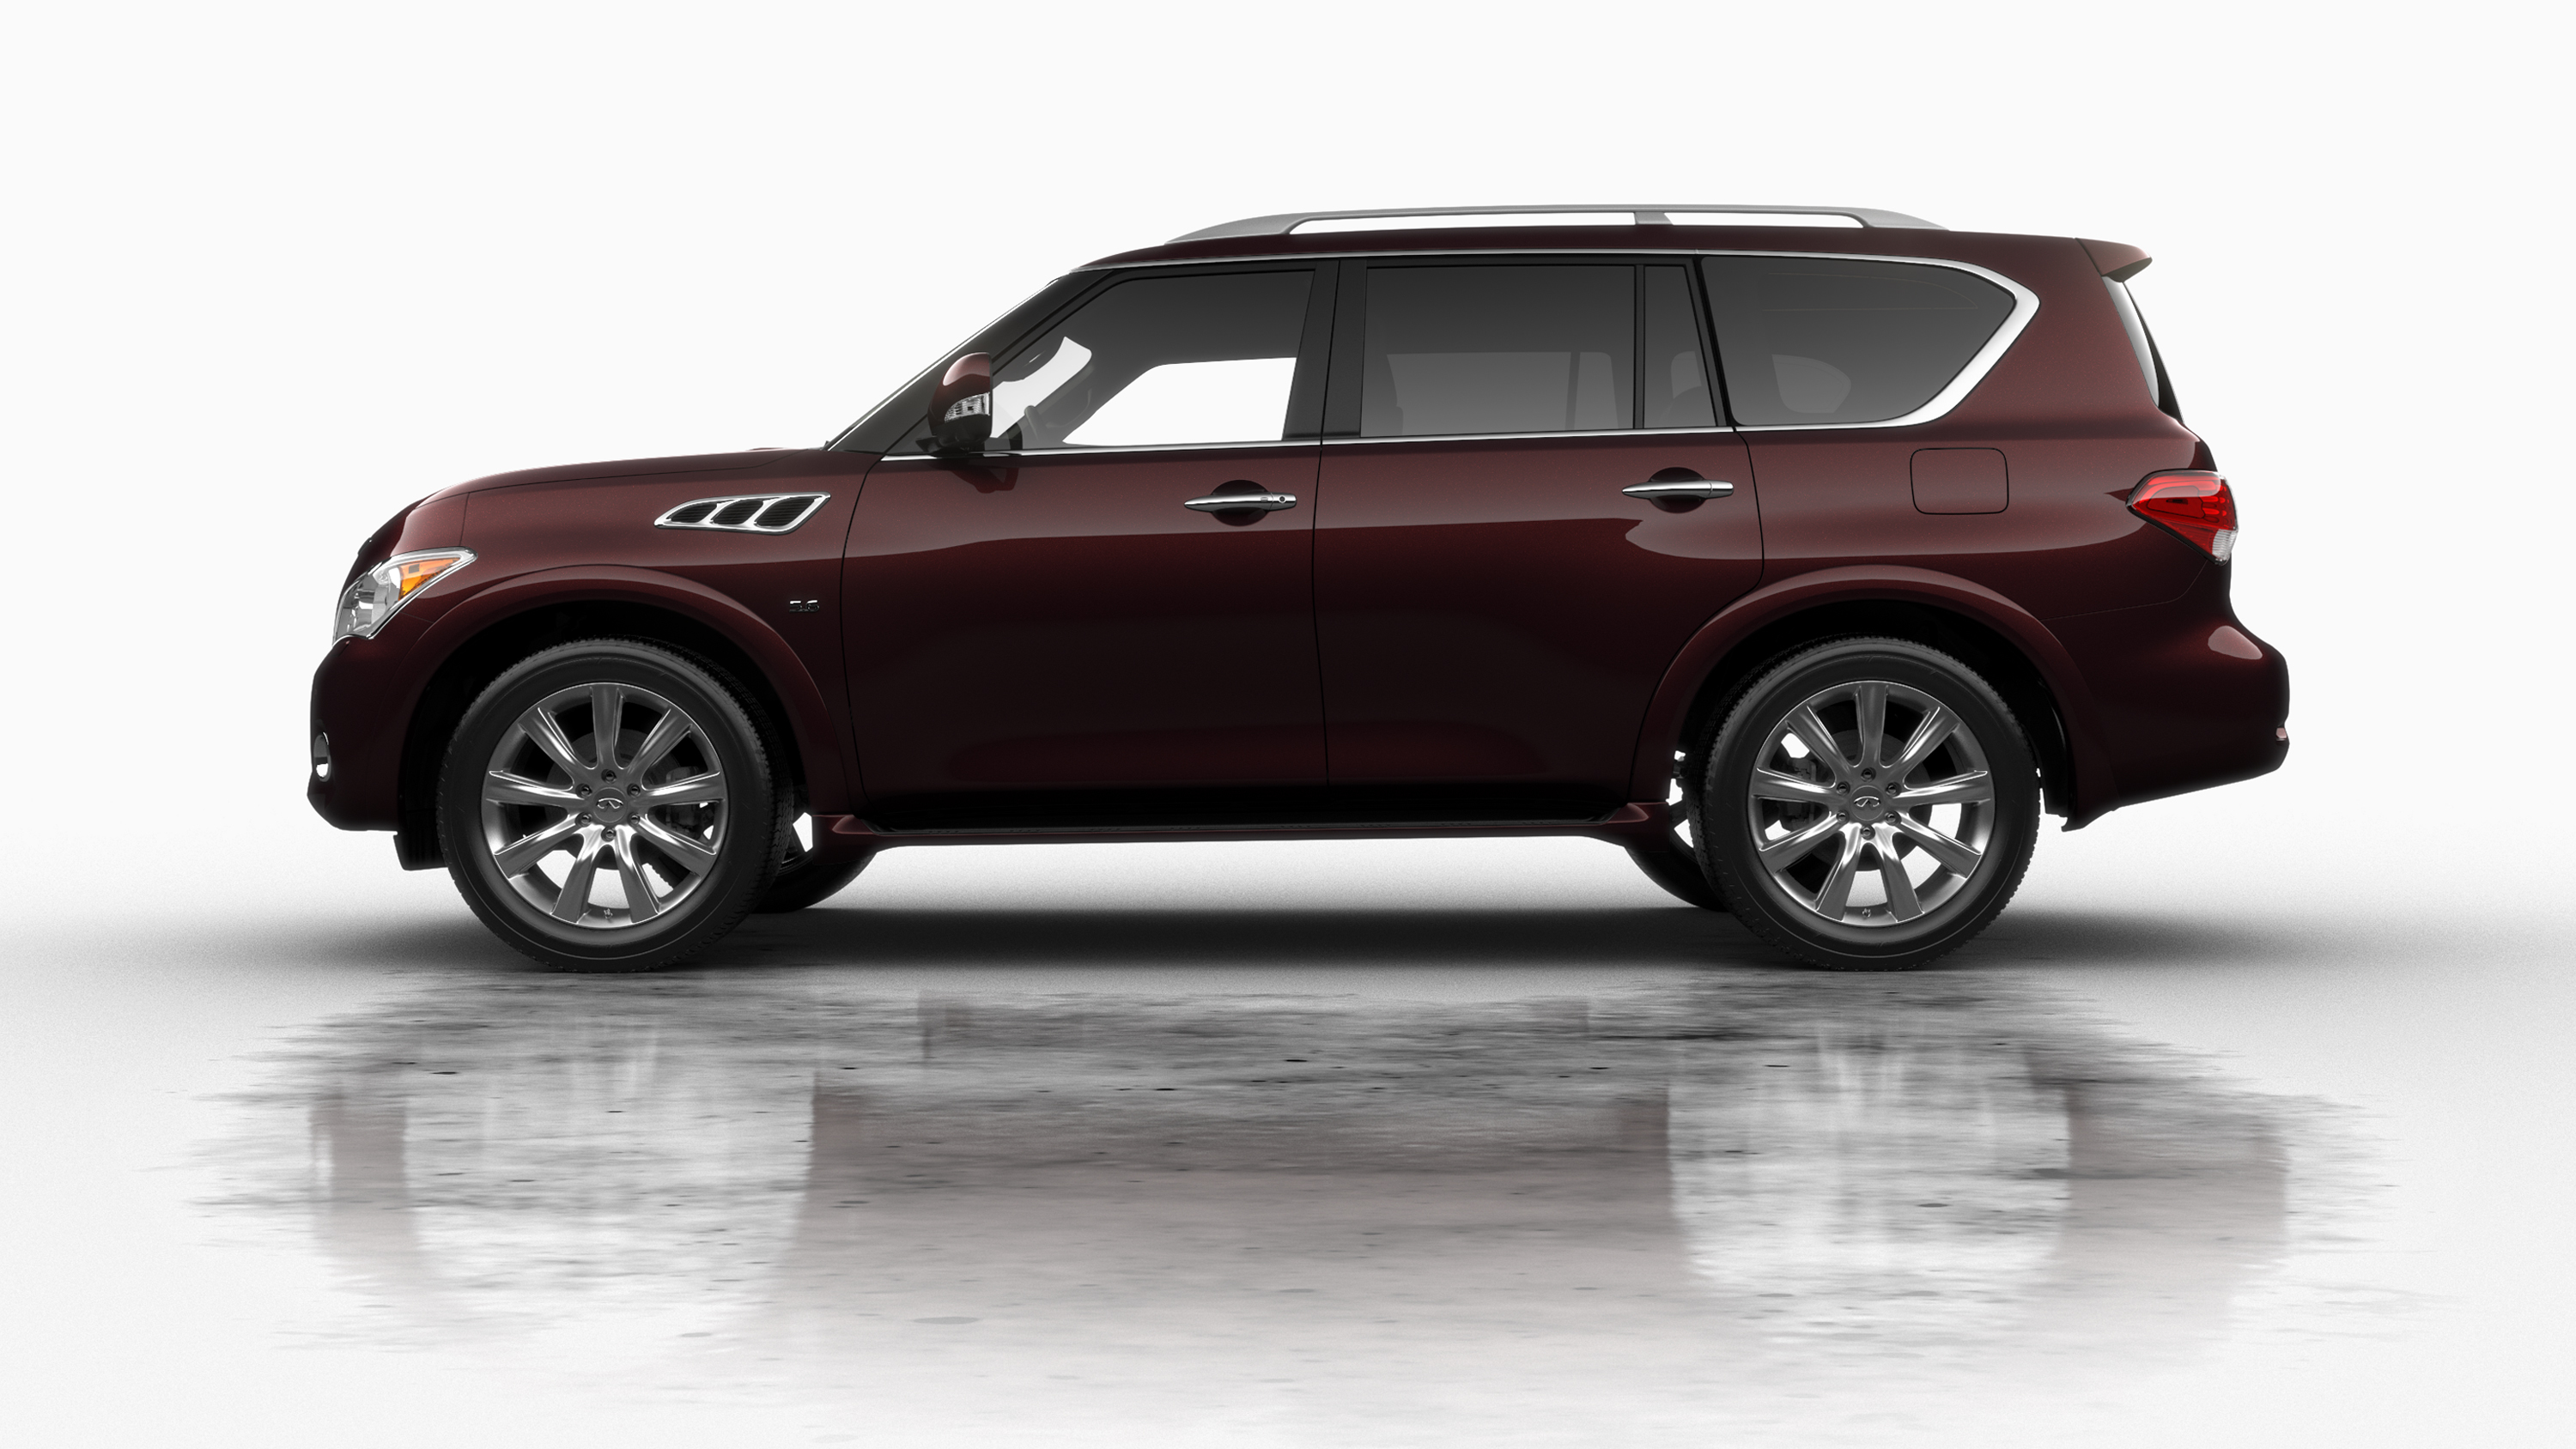 Used Infiniti Qx80 >> Infiniti QX80 | Private Fleet